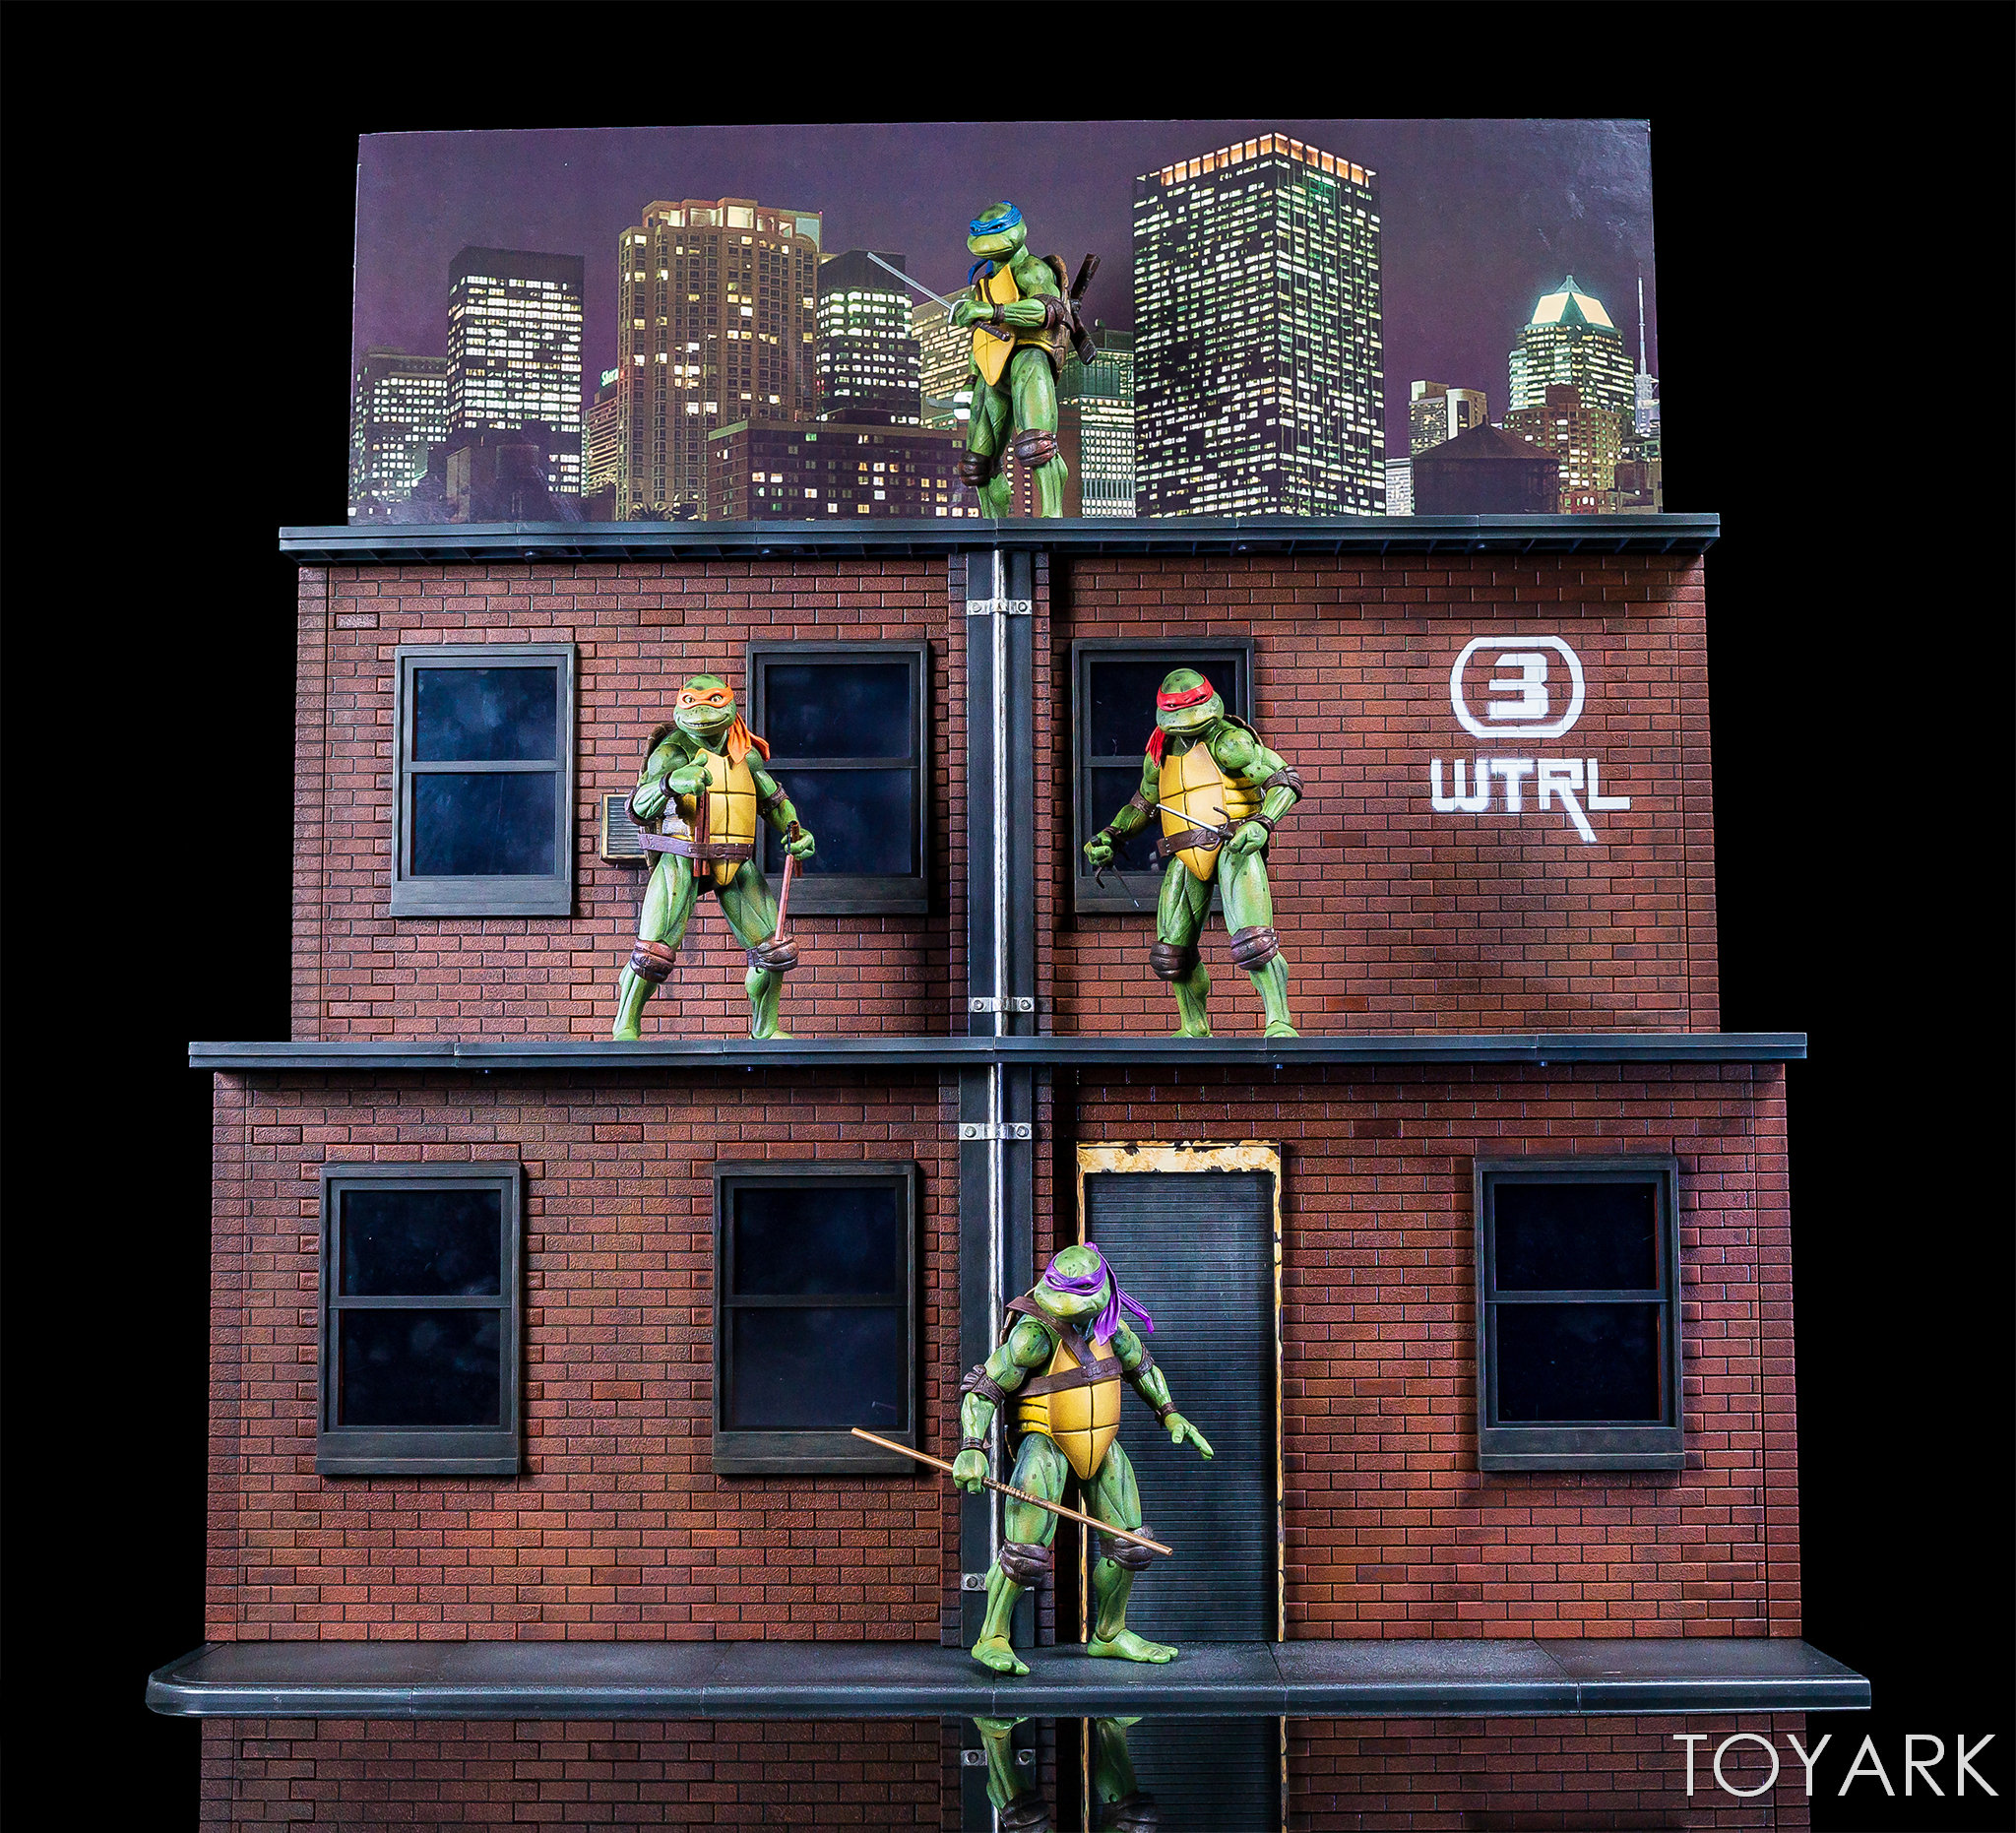 https://news.toyark.com/wp-content/uploads/sites/4/2018/07/NECA-TMNT-1990-and-Dio-Set-083.jpg